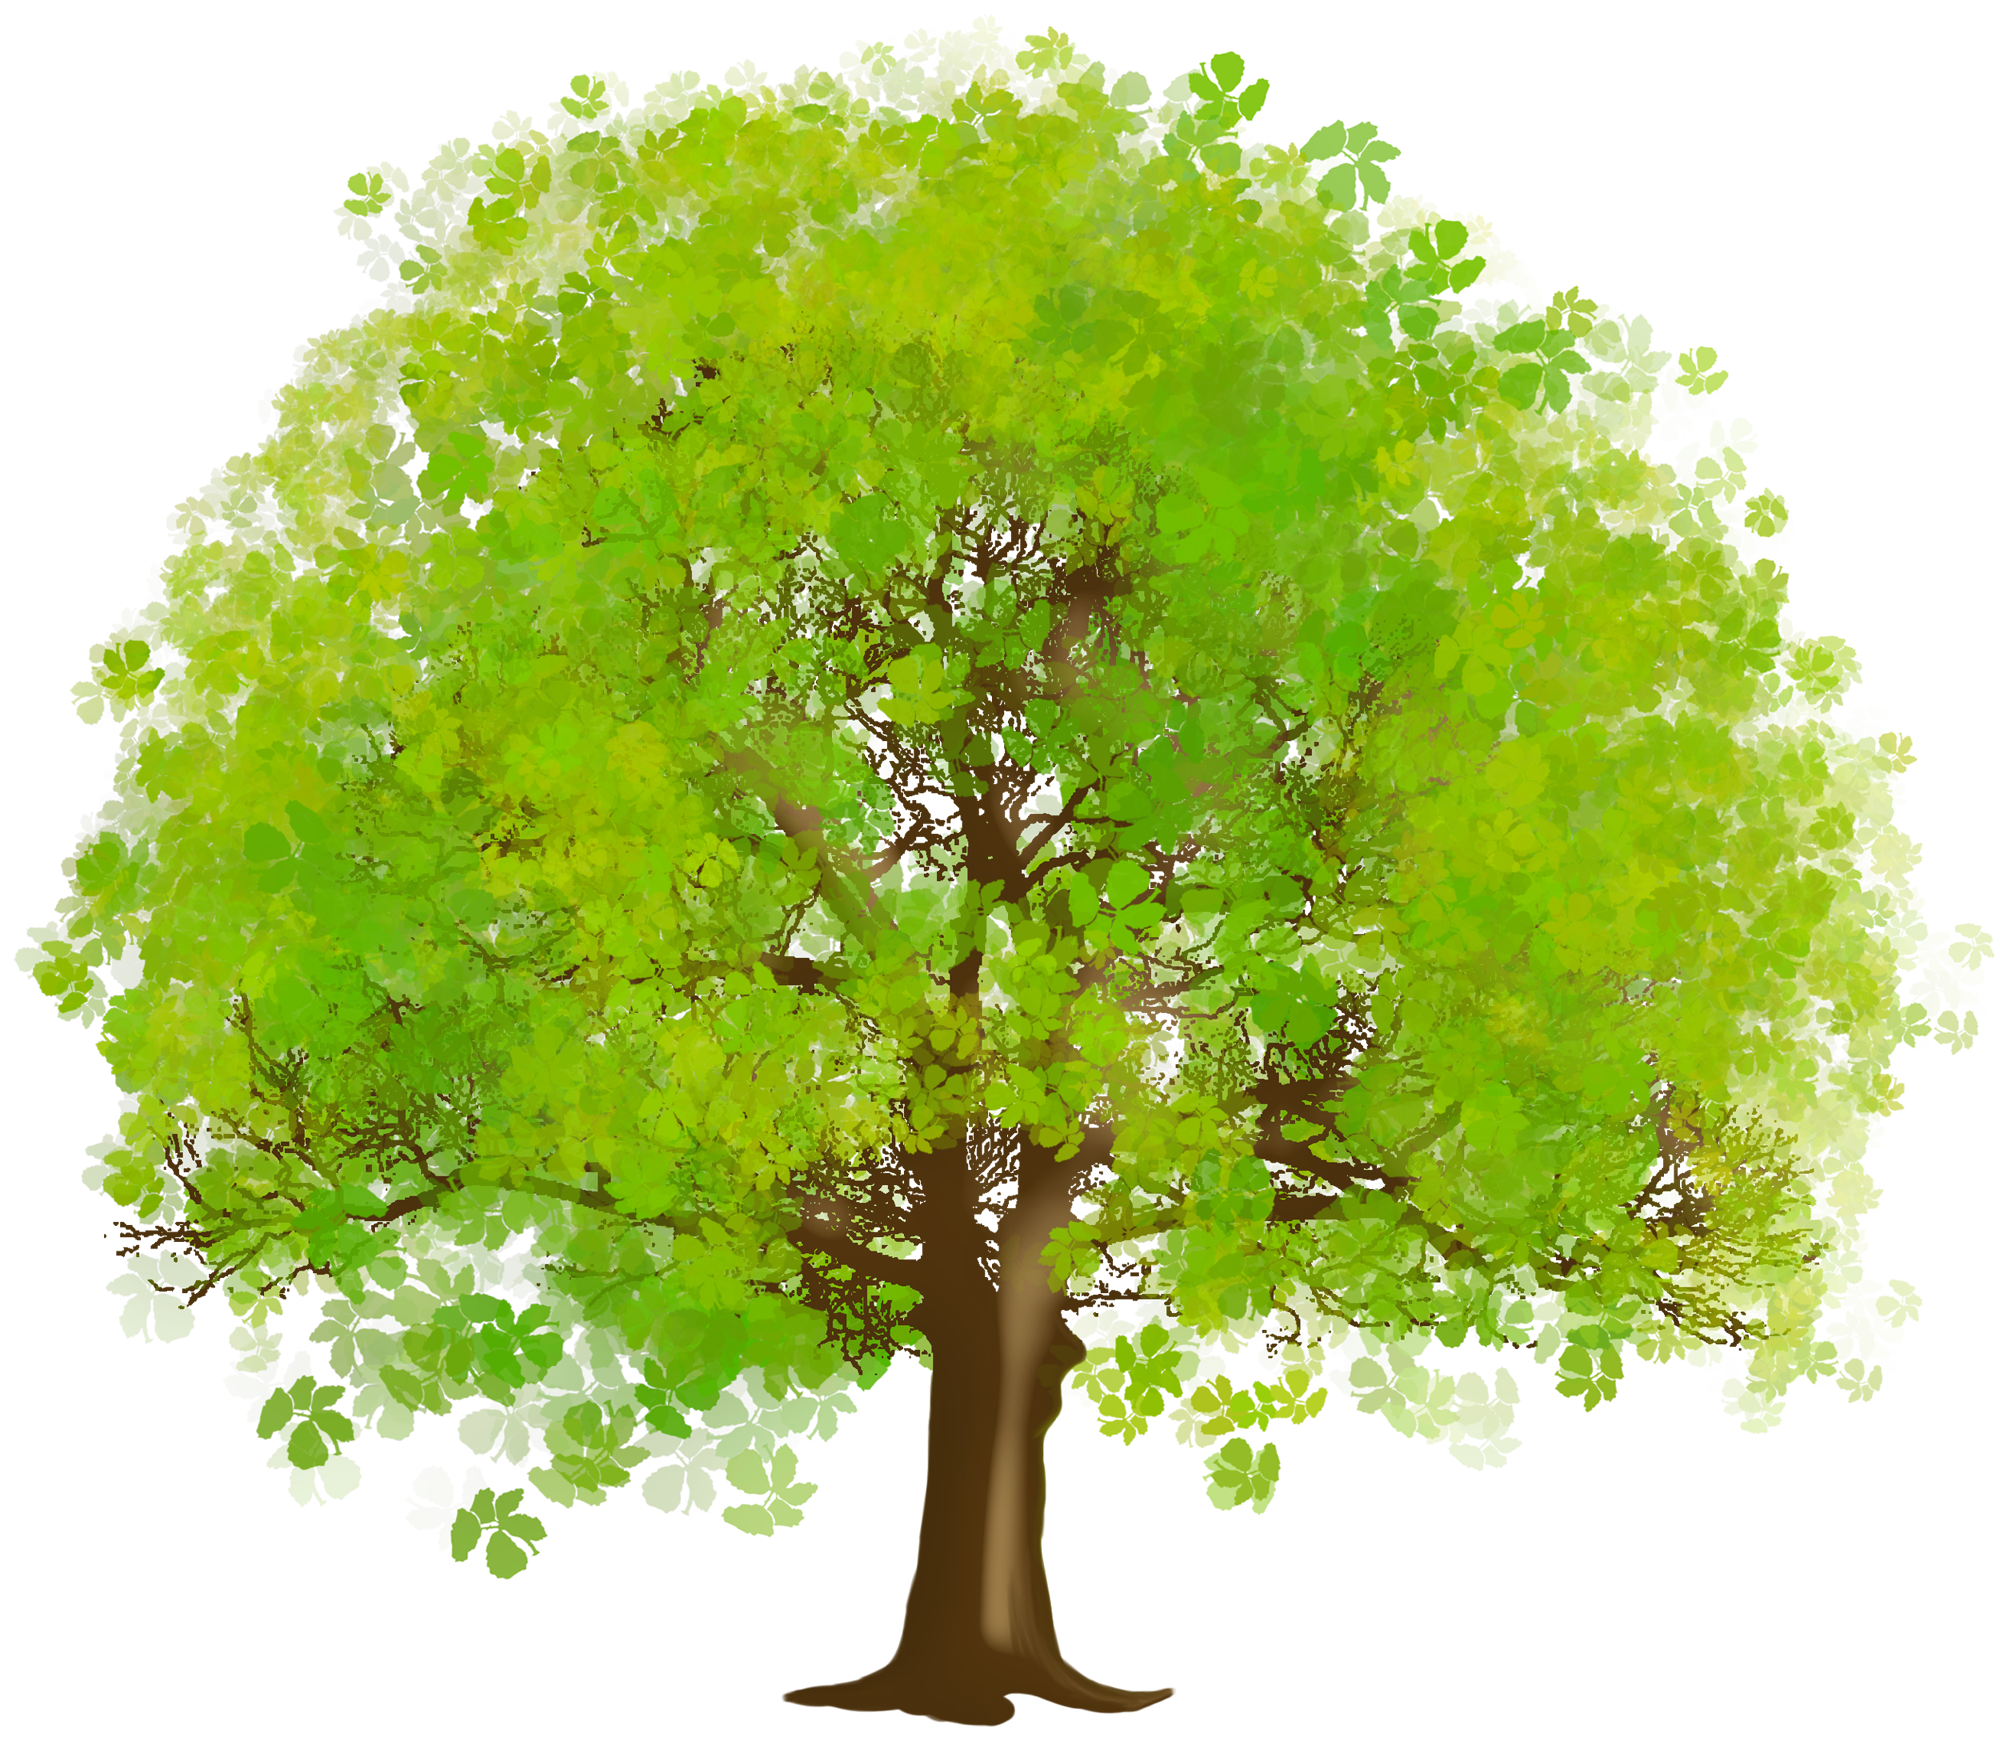 Tree clipart narra. Hq png transparent images